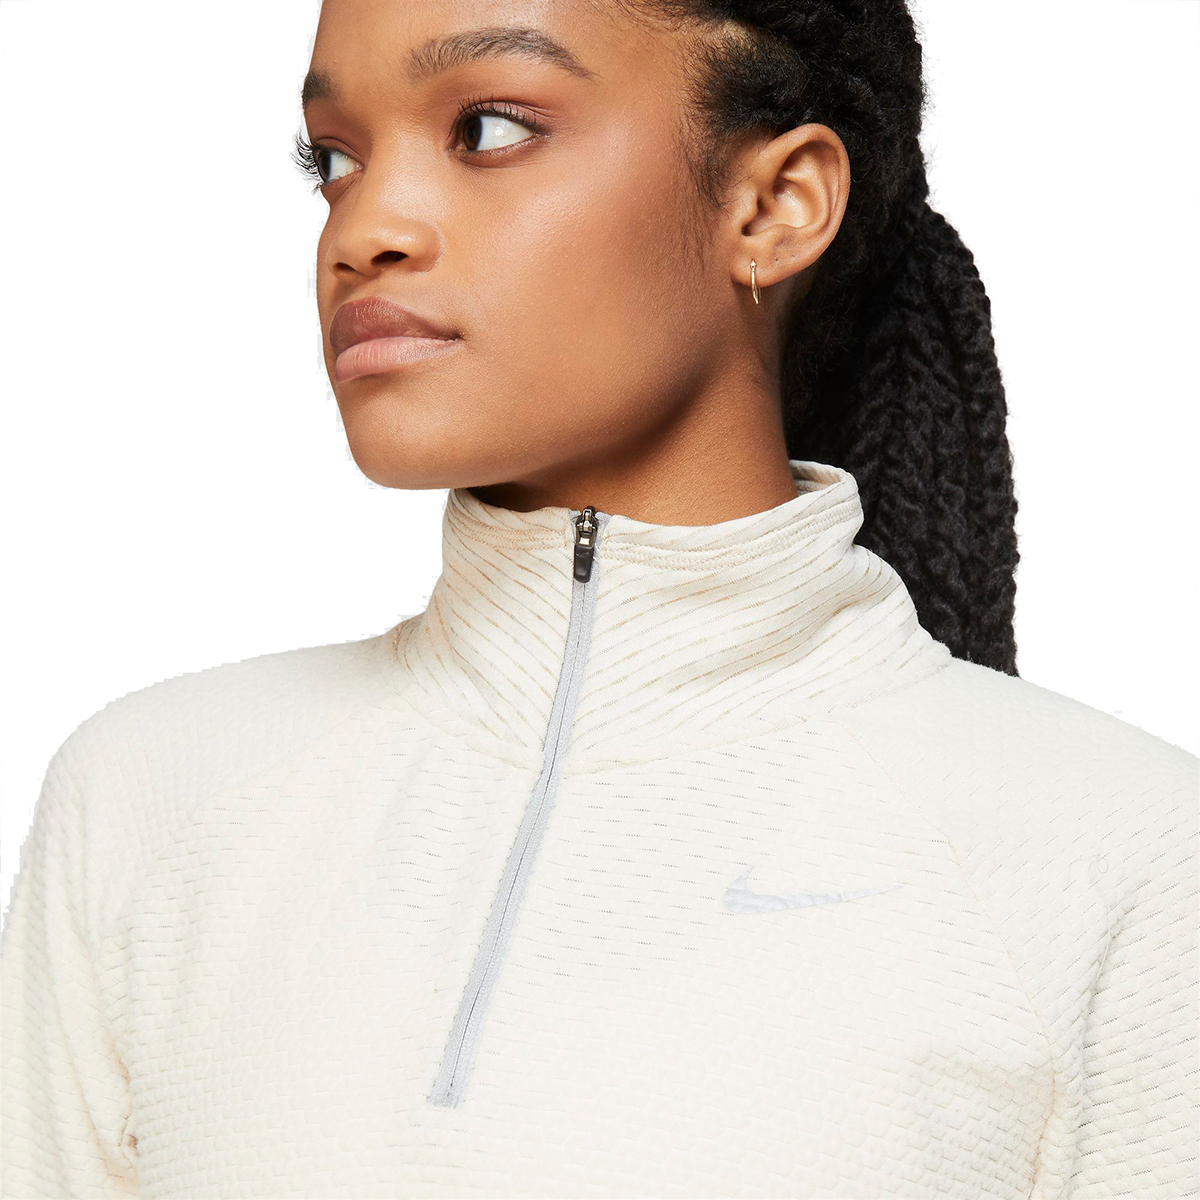 Women's Nike Sphere Half Zip Long Sleeve Shirt - Color: Oatmeal/Heather - Size: XS, Oatmeal/Heather, large, image 2